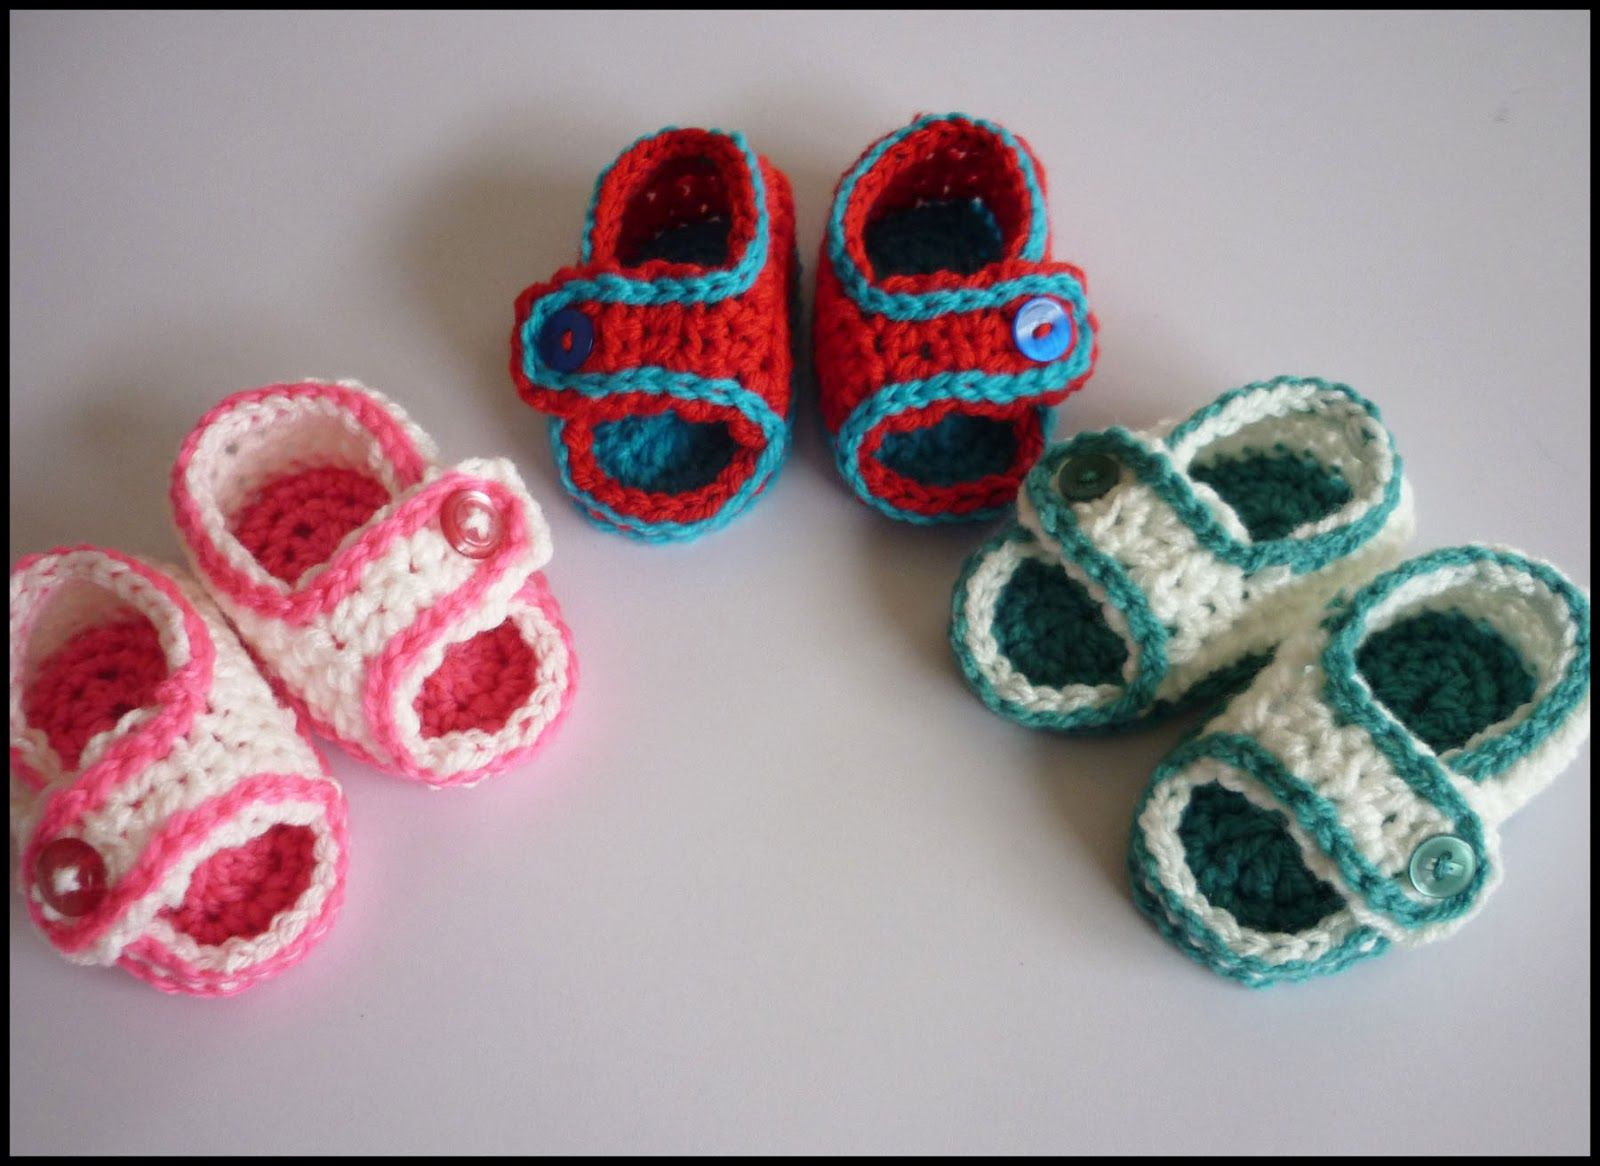 60 adorable and free crochet baby sandals patterns crochet baby 60 adorable and free crochet baby sandals patterns bankloansurffo Image collections